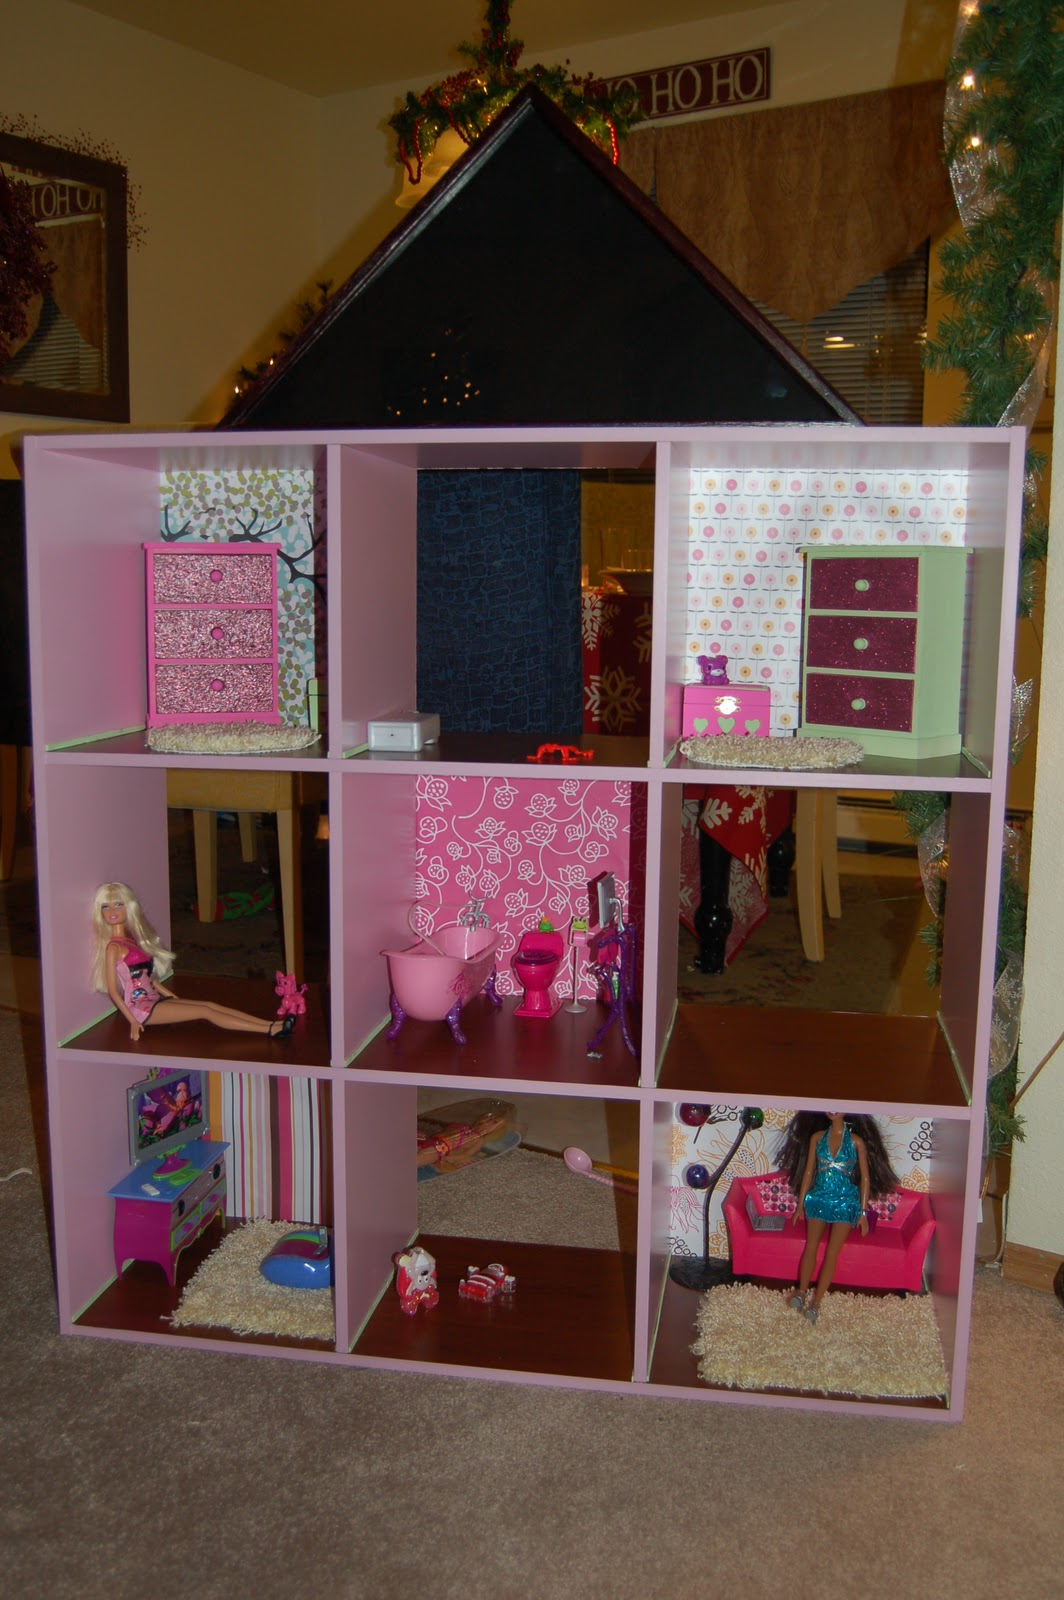 How To Make A Home Delectable Of DIY Barbie Doll House Images